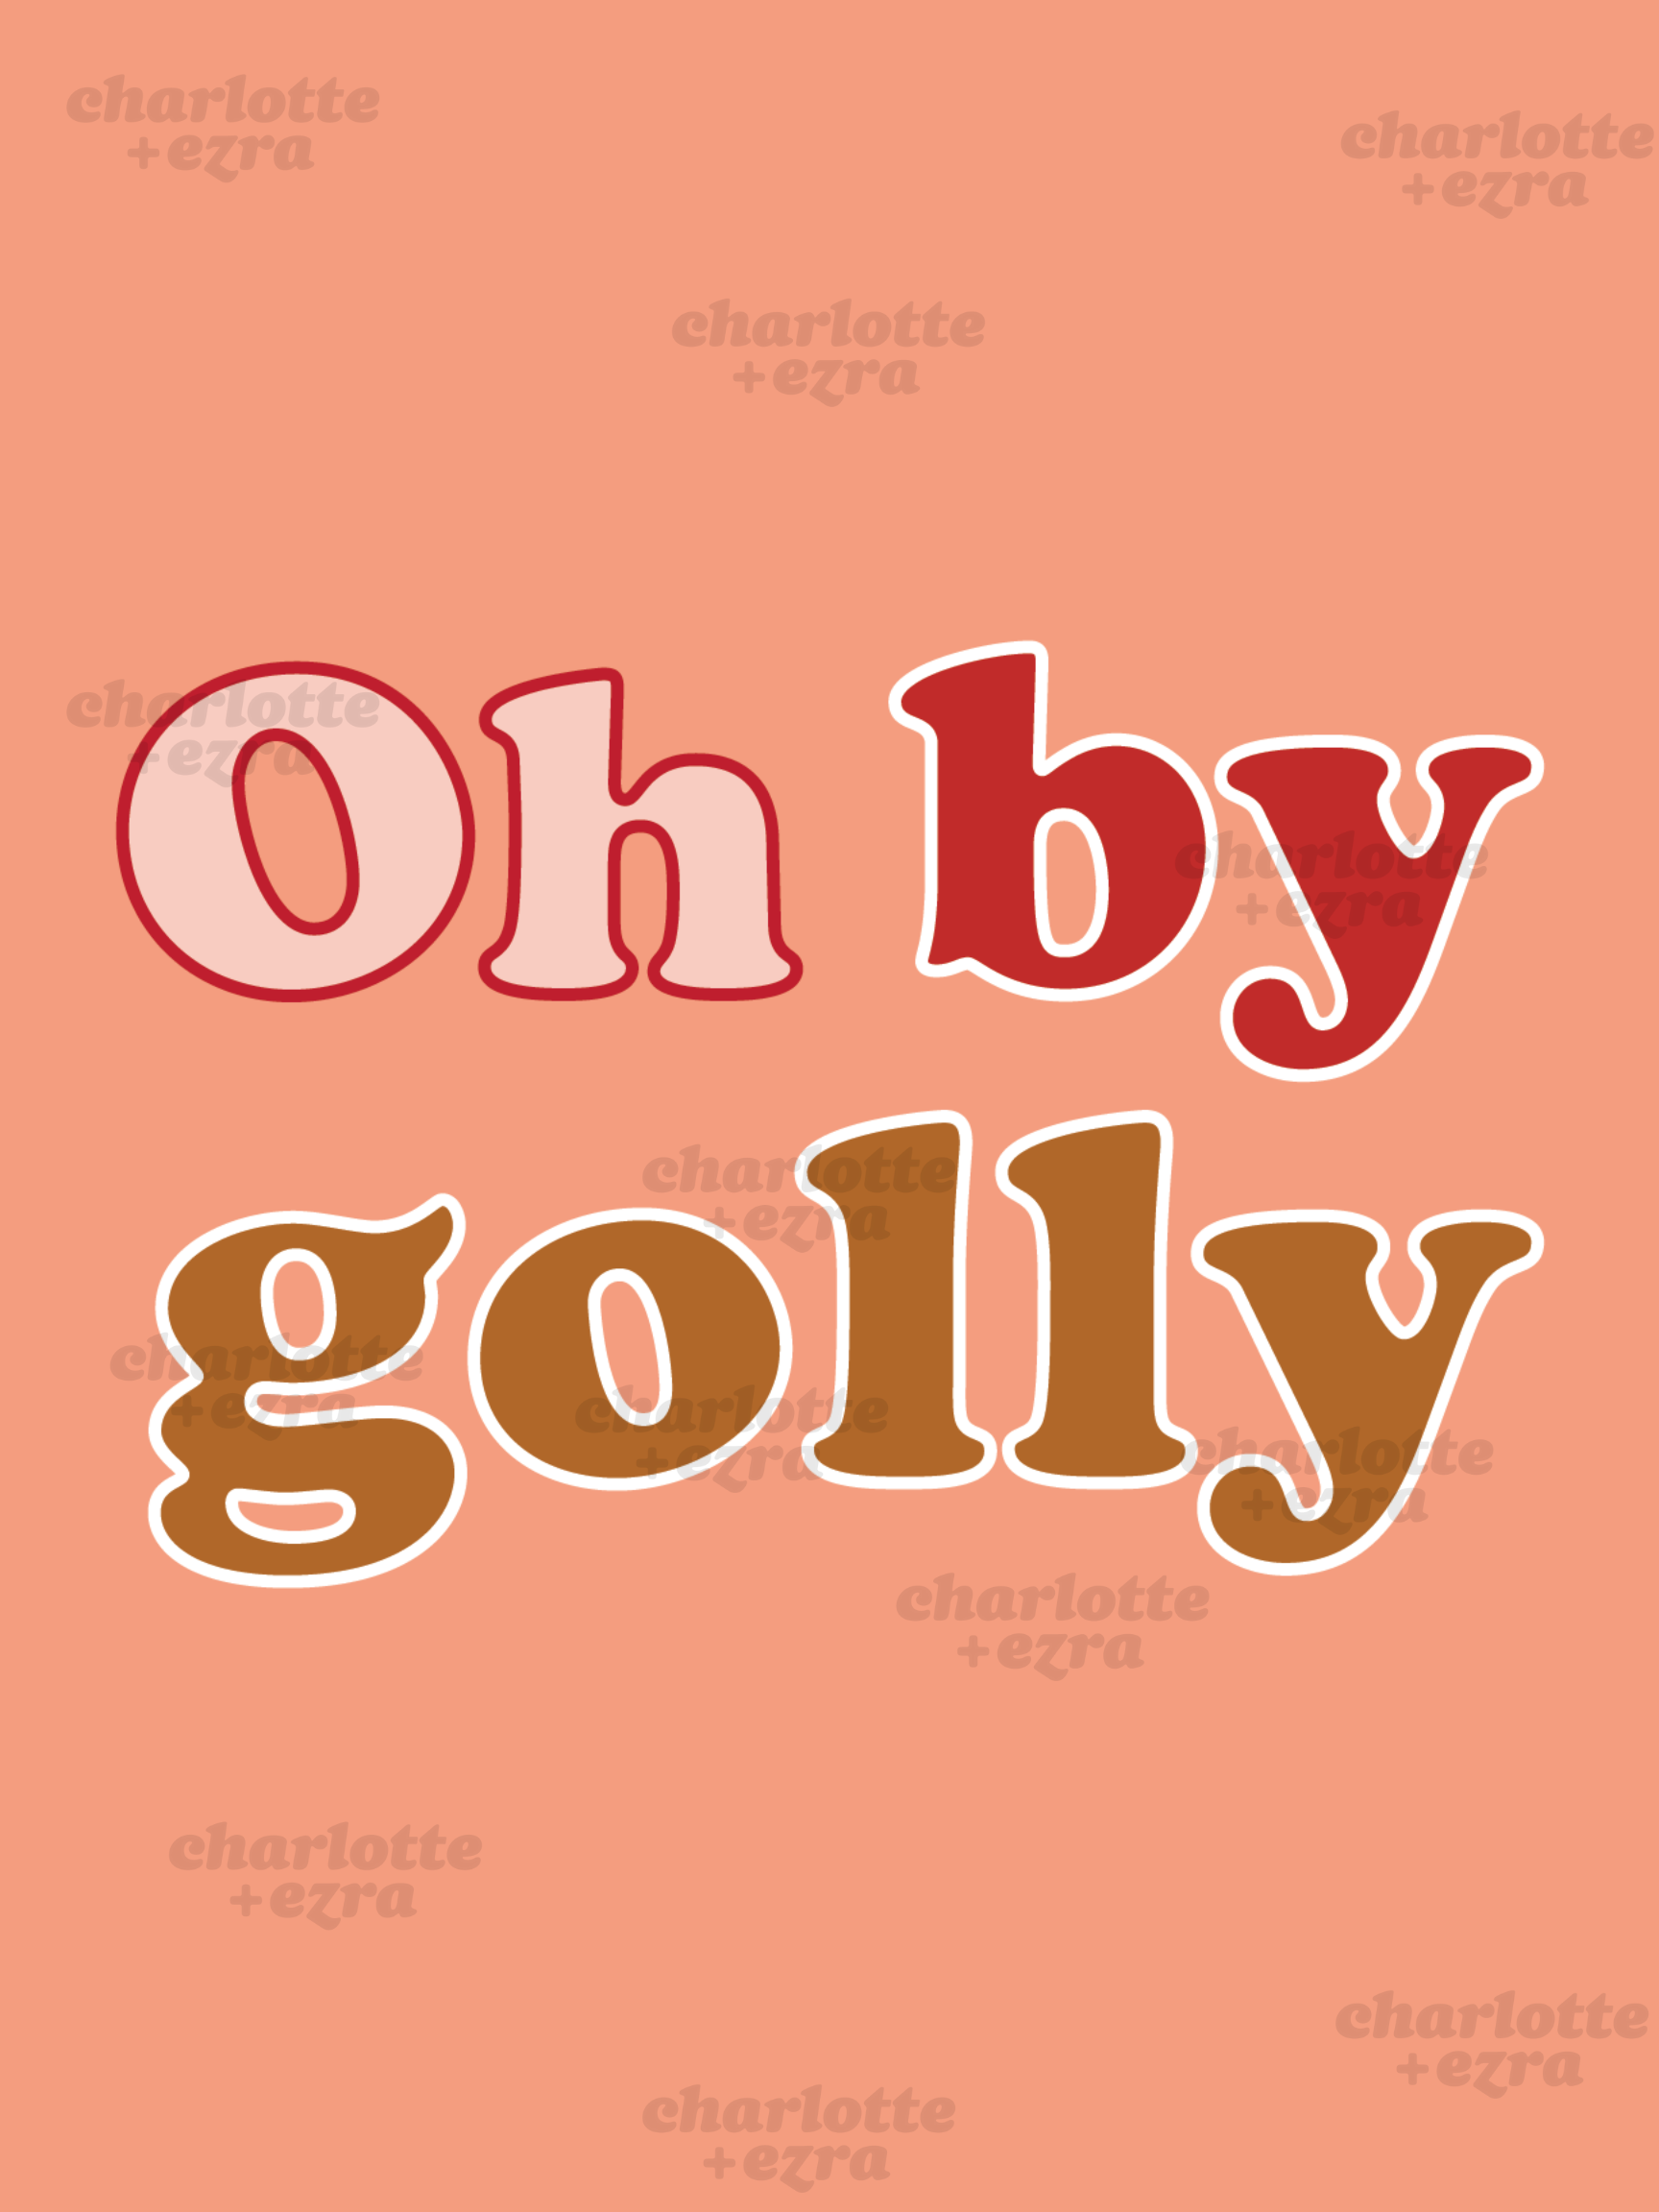 Oh by golly printable